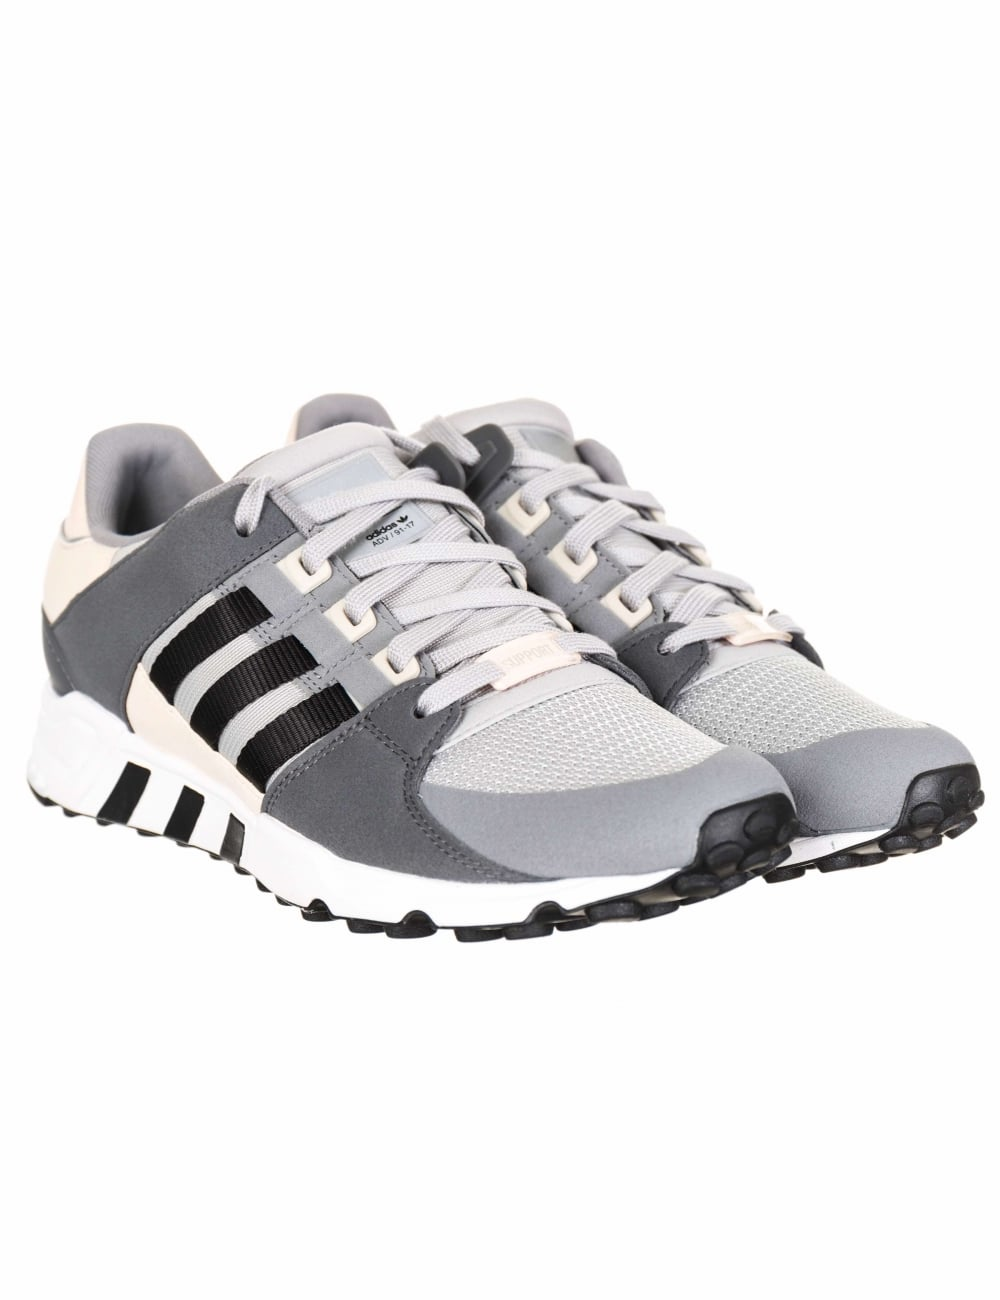 100% authentic 85688 acd88 EQT Support RF Trainers - Grey Two/Core Black